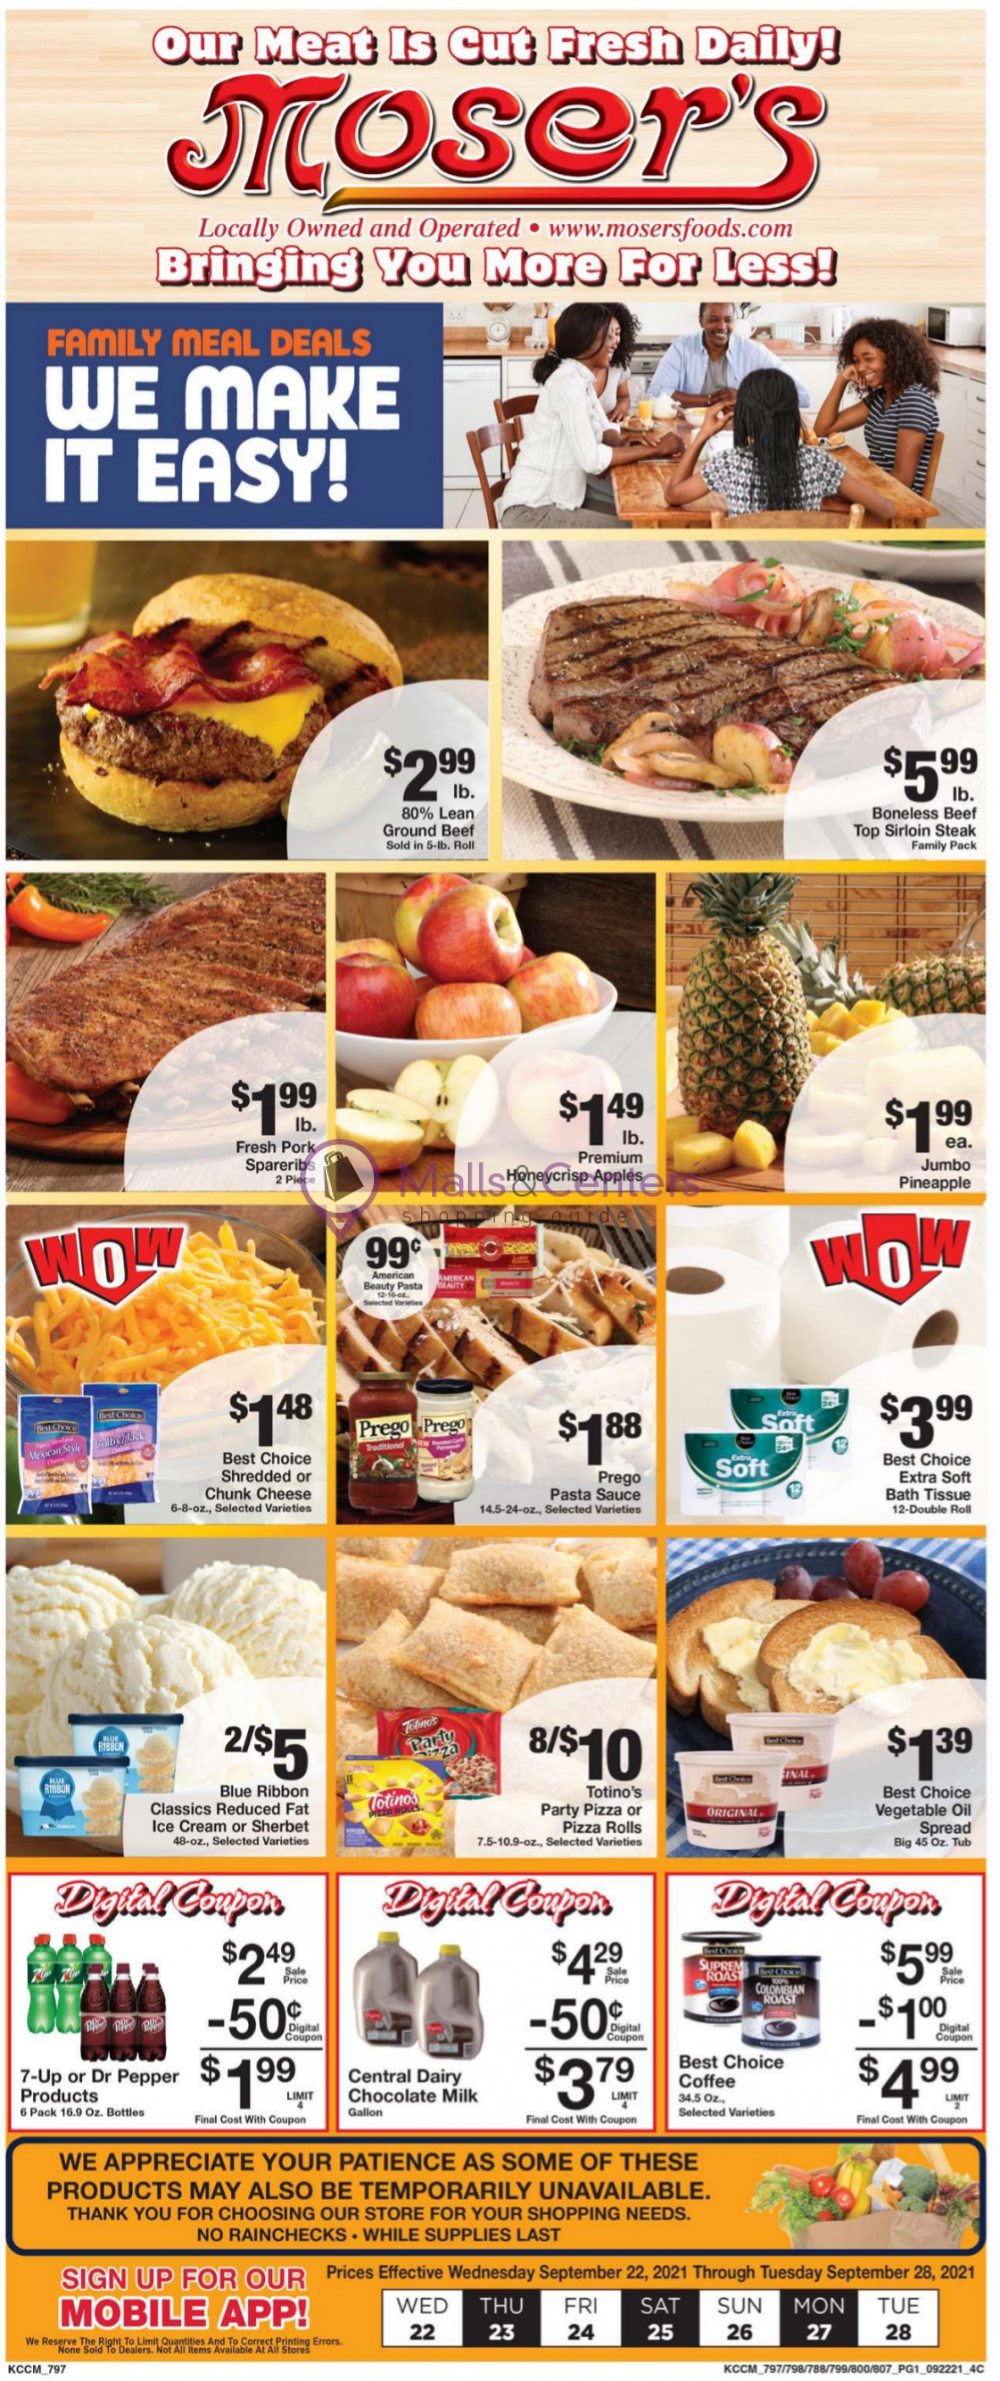 weekly ads Moser's Foods - page 1 - mallscenters.com